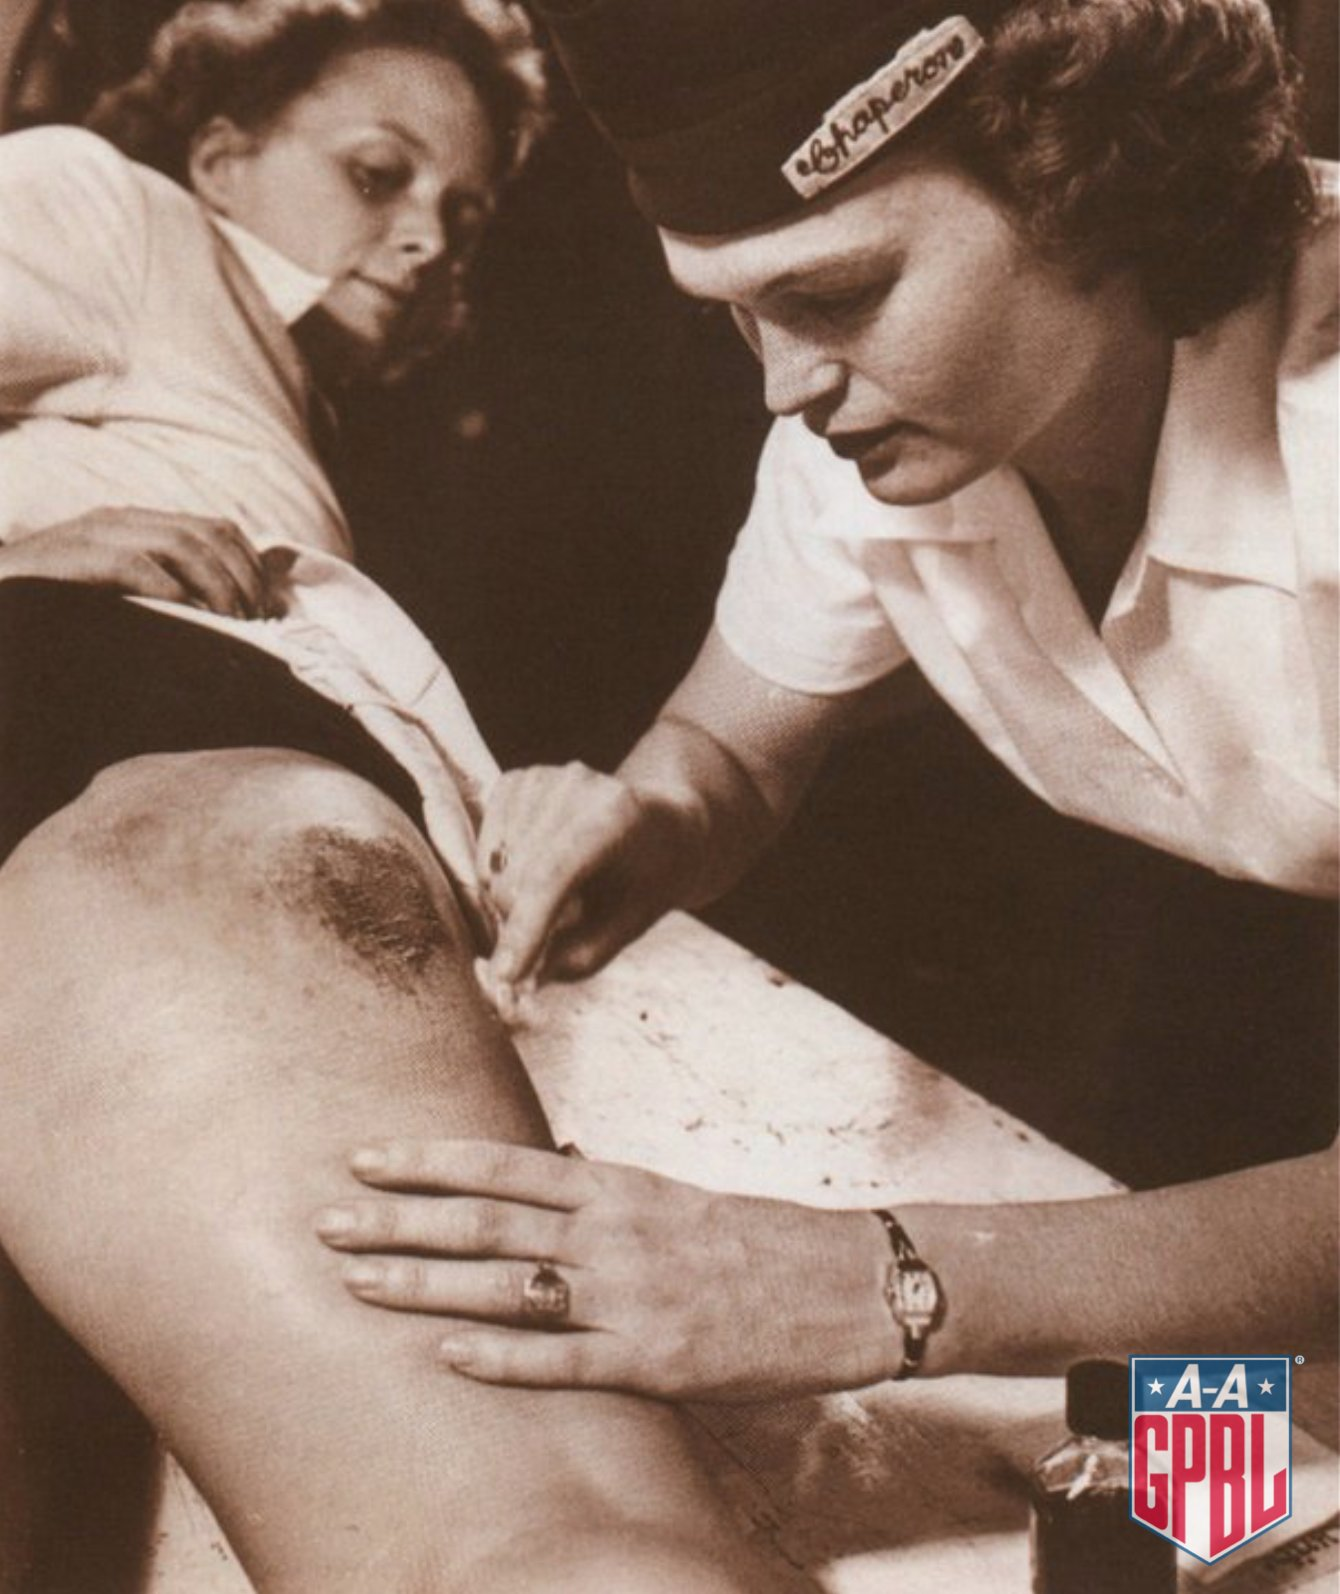 """""""The players would get 'strawberries' (bruises) on their legs from sliding in the skirted uniforms, but chaperones taped them up and they'd play again.""""  -Helen Callaghan, Ft. Wayne Daisies #AAGPBL https://t.co/SAyknDiQbq"""